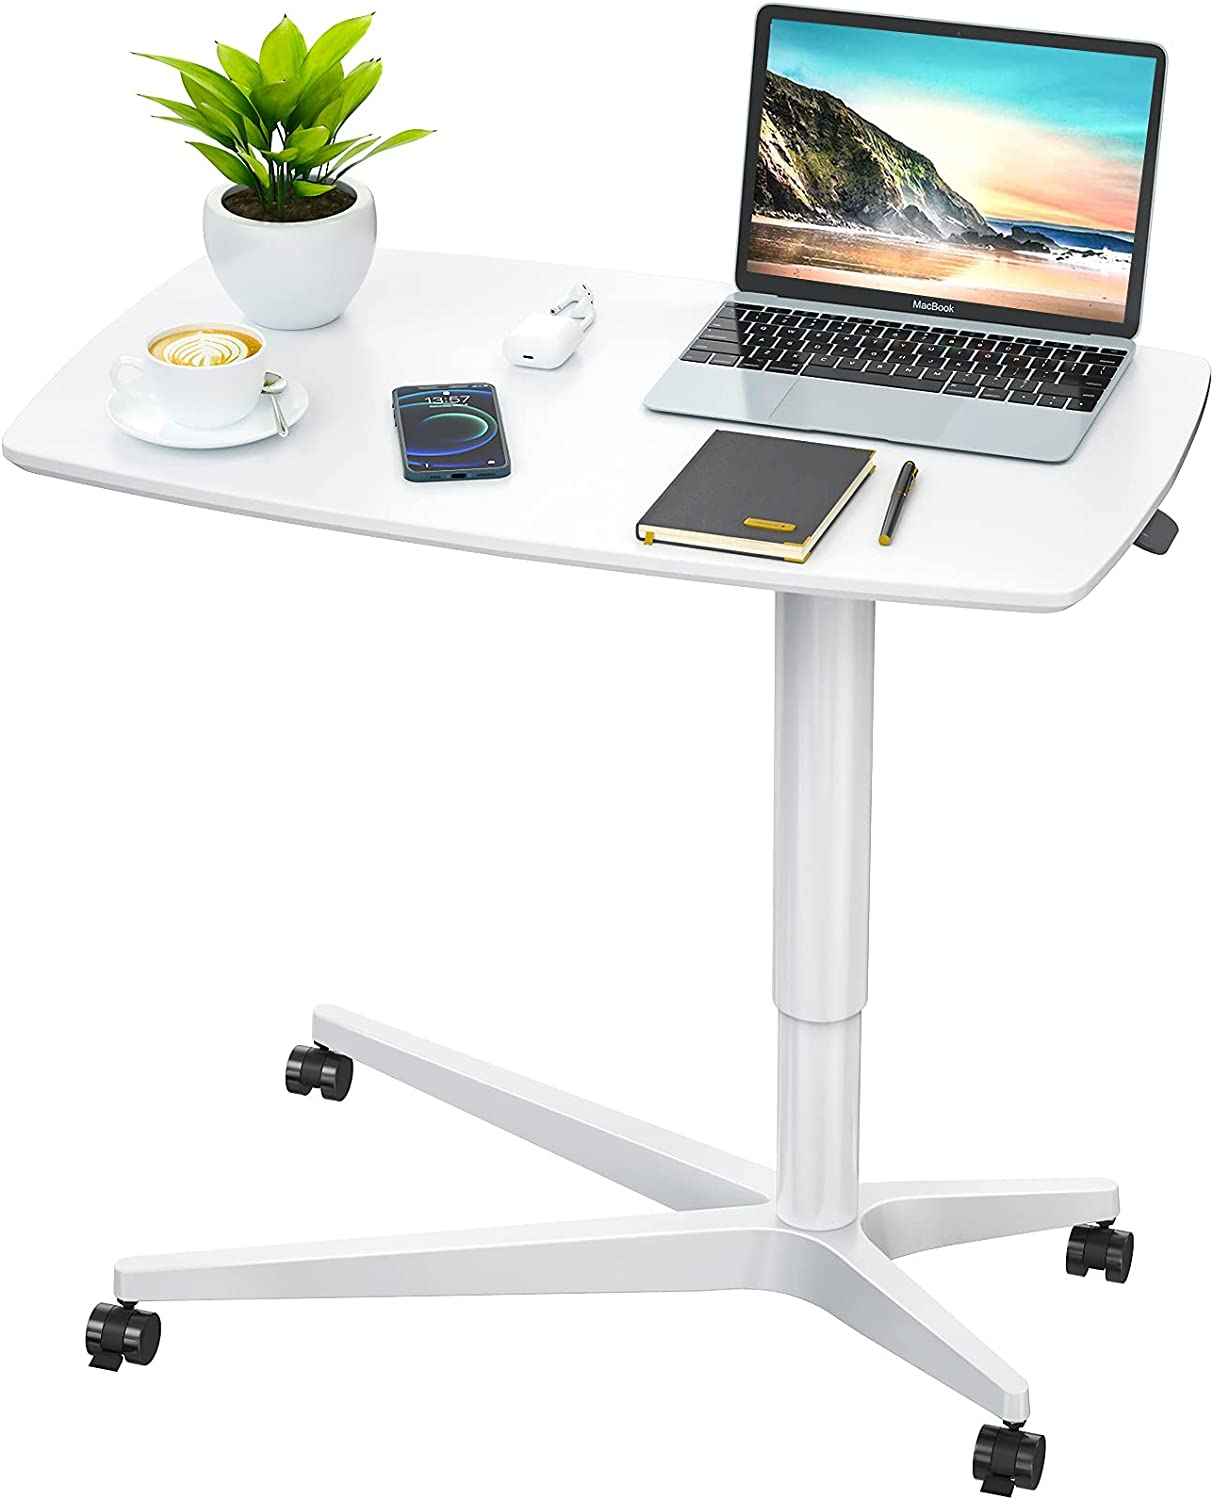 Mobile Standing Desk Height Adjustable Pneumatic Rolling Sit Stand Desk Converter Small Laptop Desk Cart Riser for Home Office, White by FURNINXS